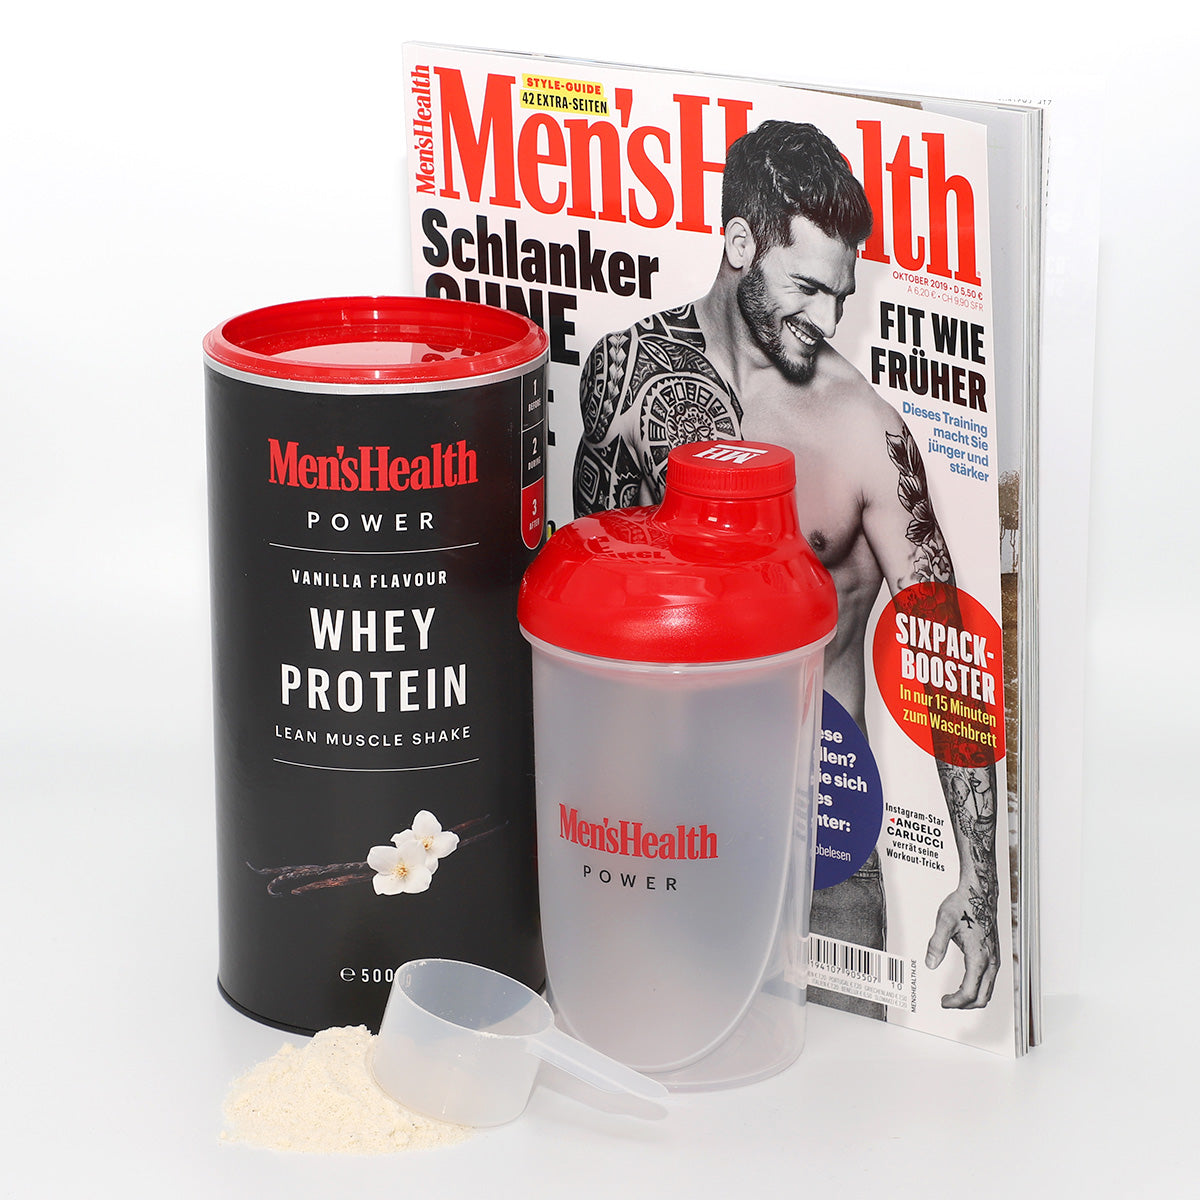 Lean Muscle Shake (500g)